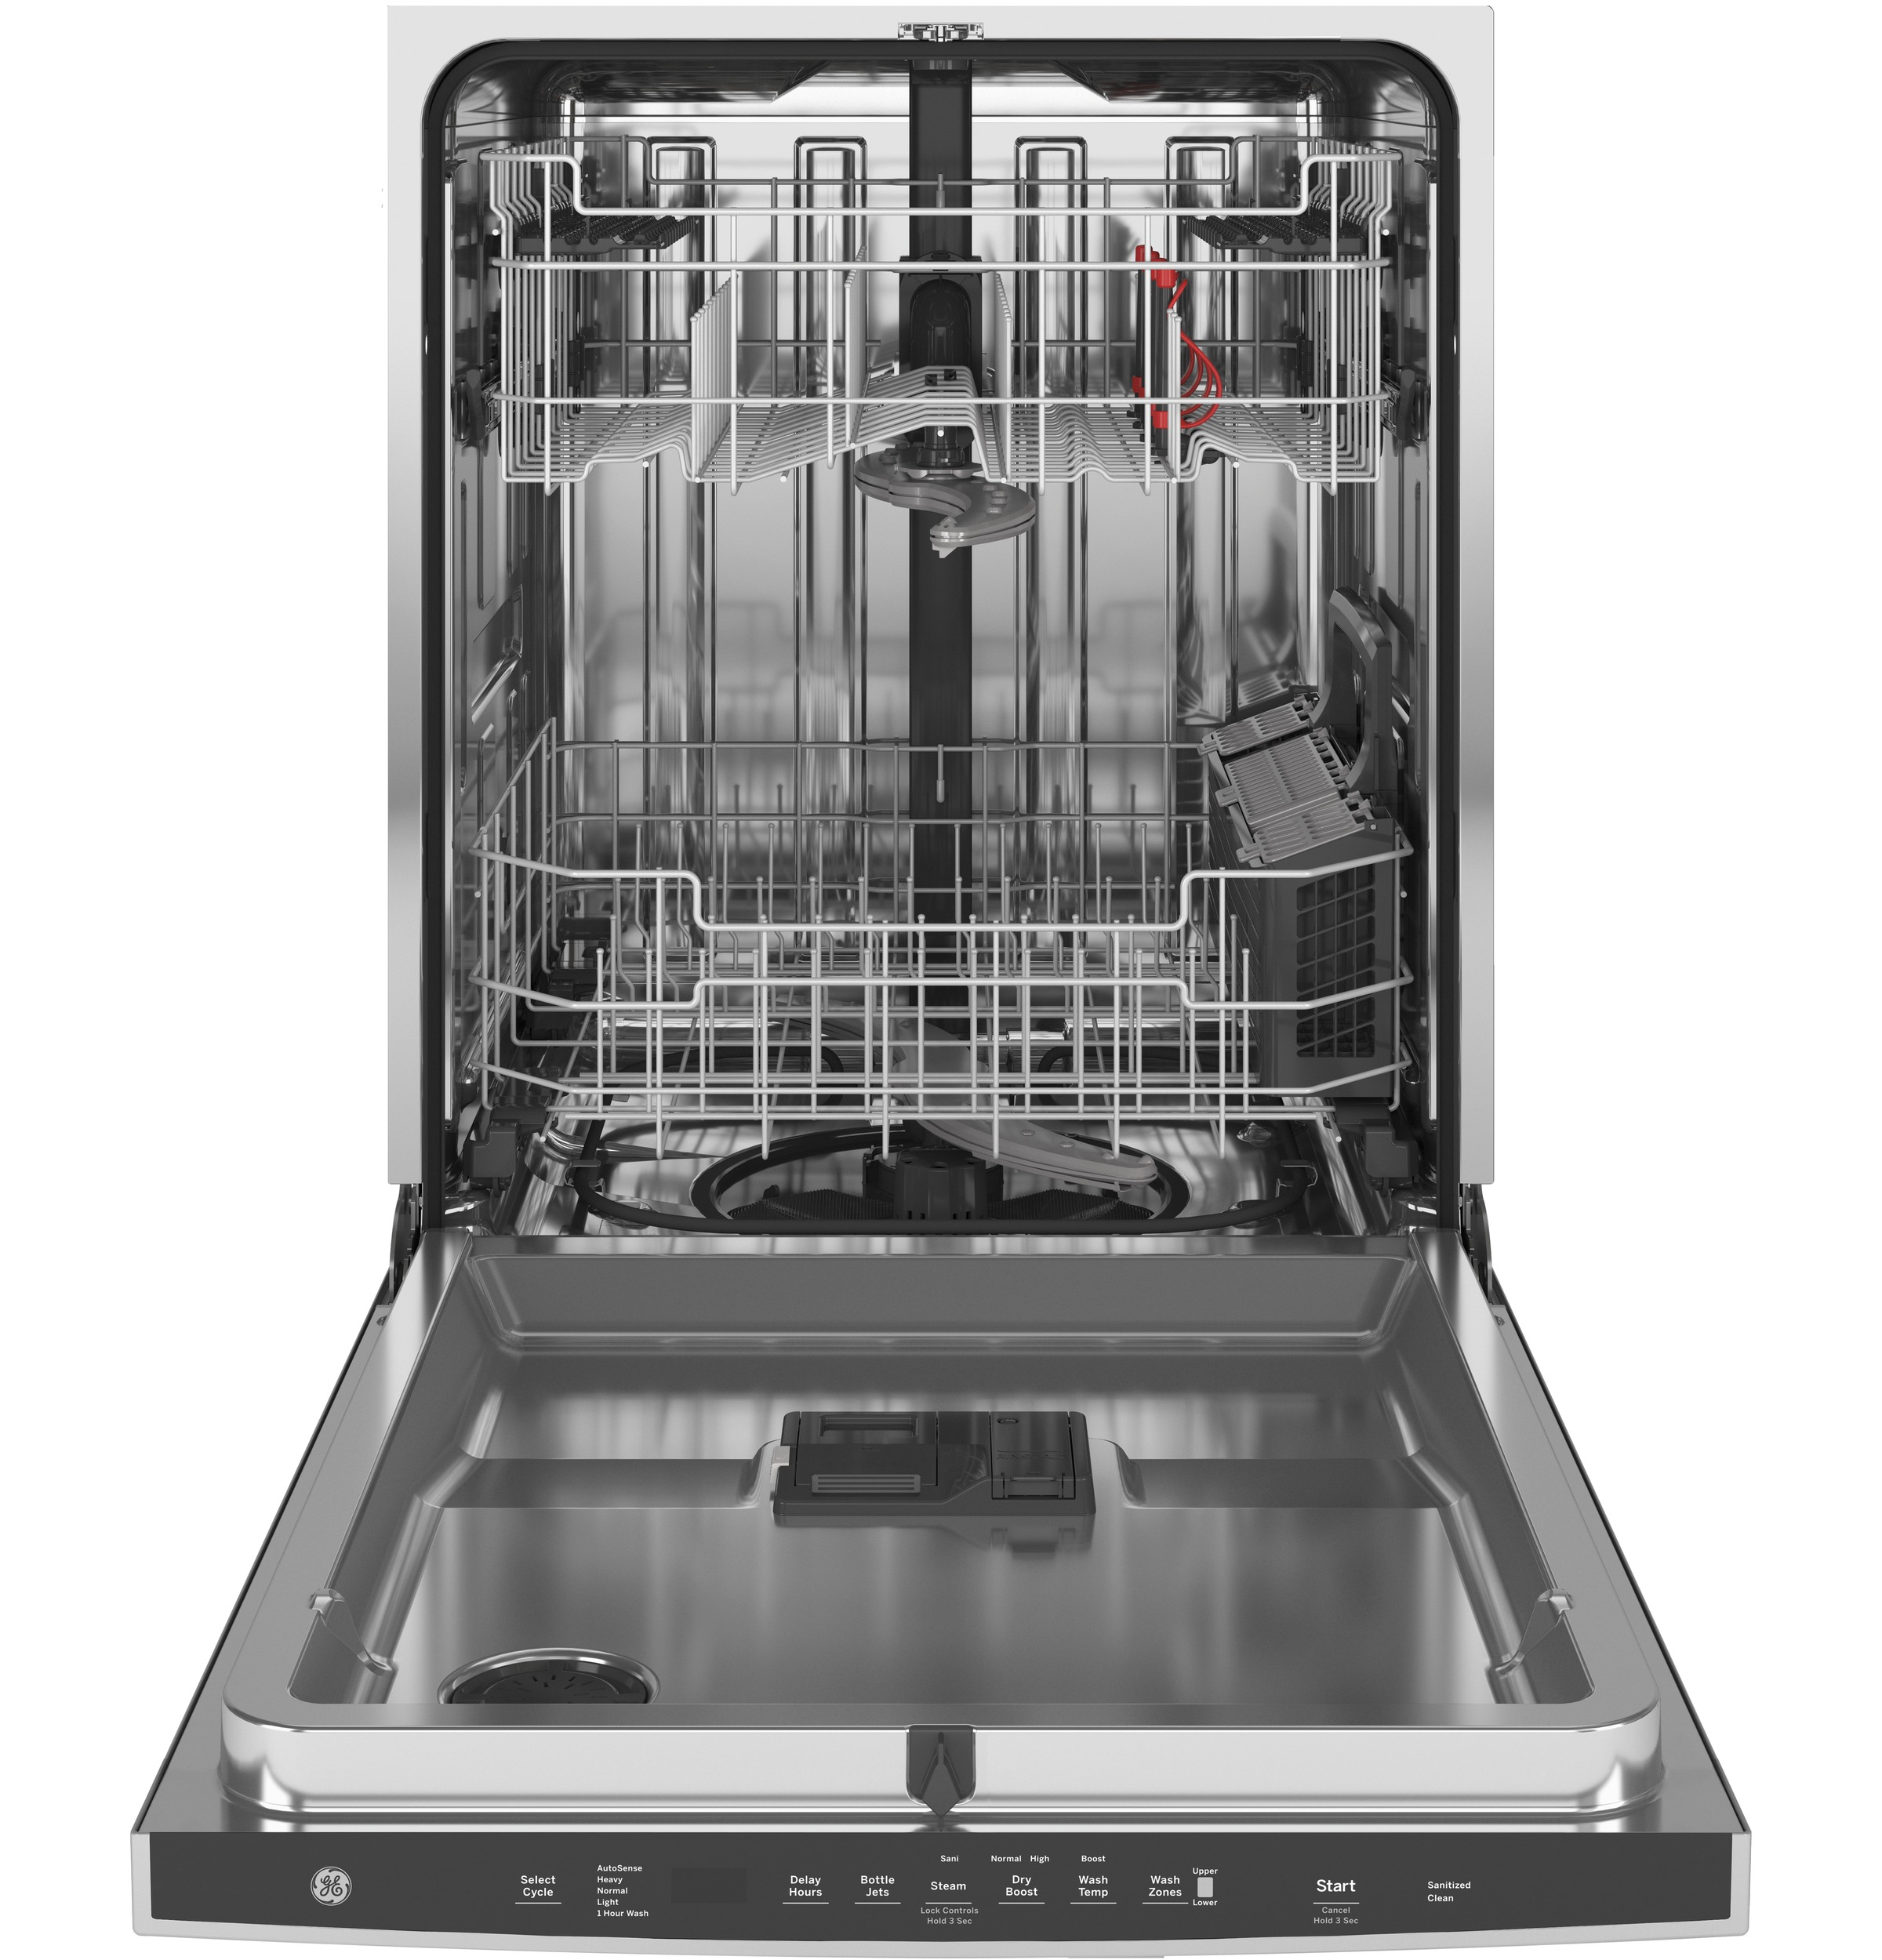 Model: GDT645SYNFS | GE GE® Fingerprint Resistant Top Control with Stainless Steel Interior Dishwasher with Sanitize Cycle & Dry Boost with Fan Assist